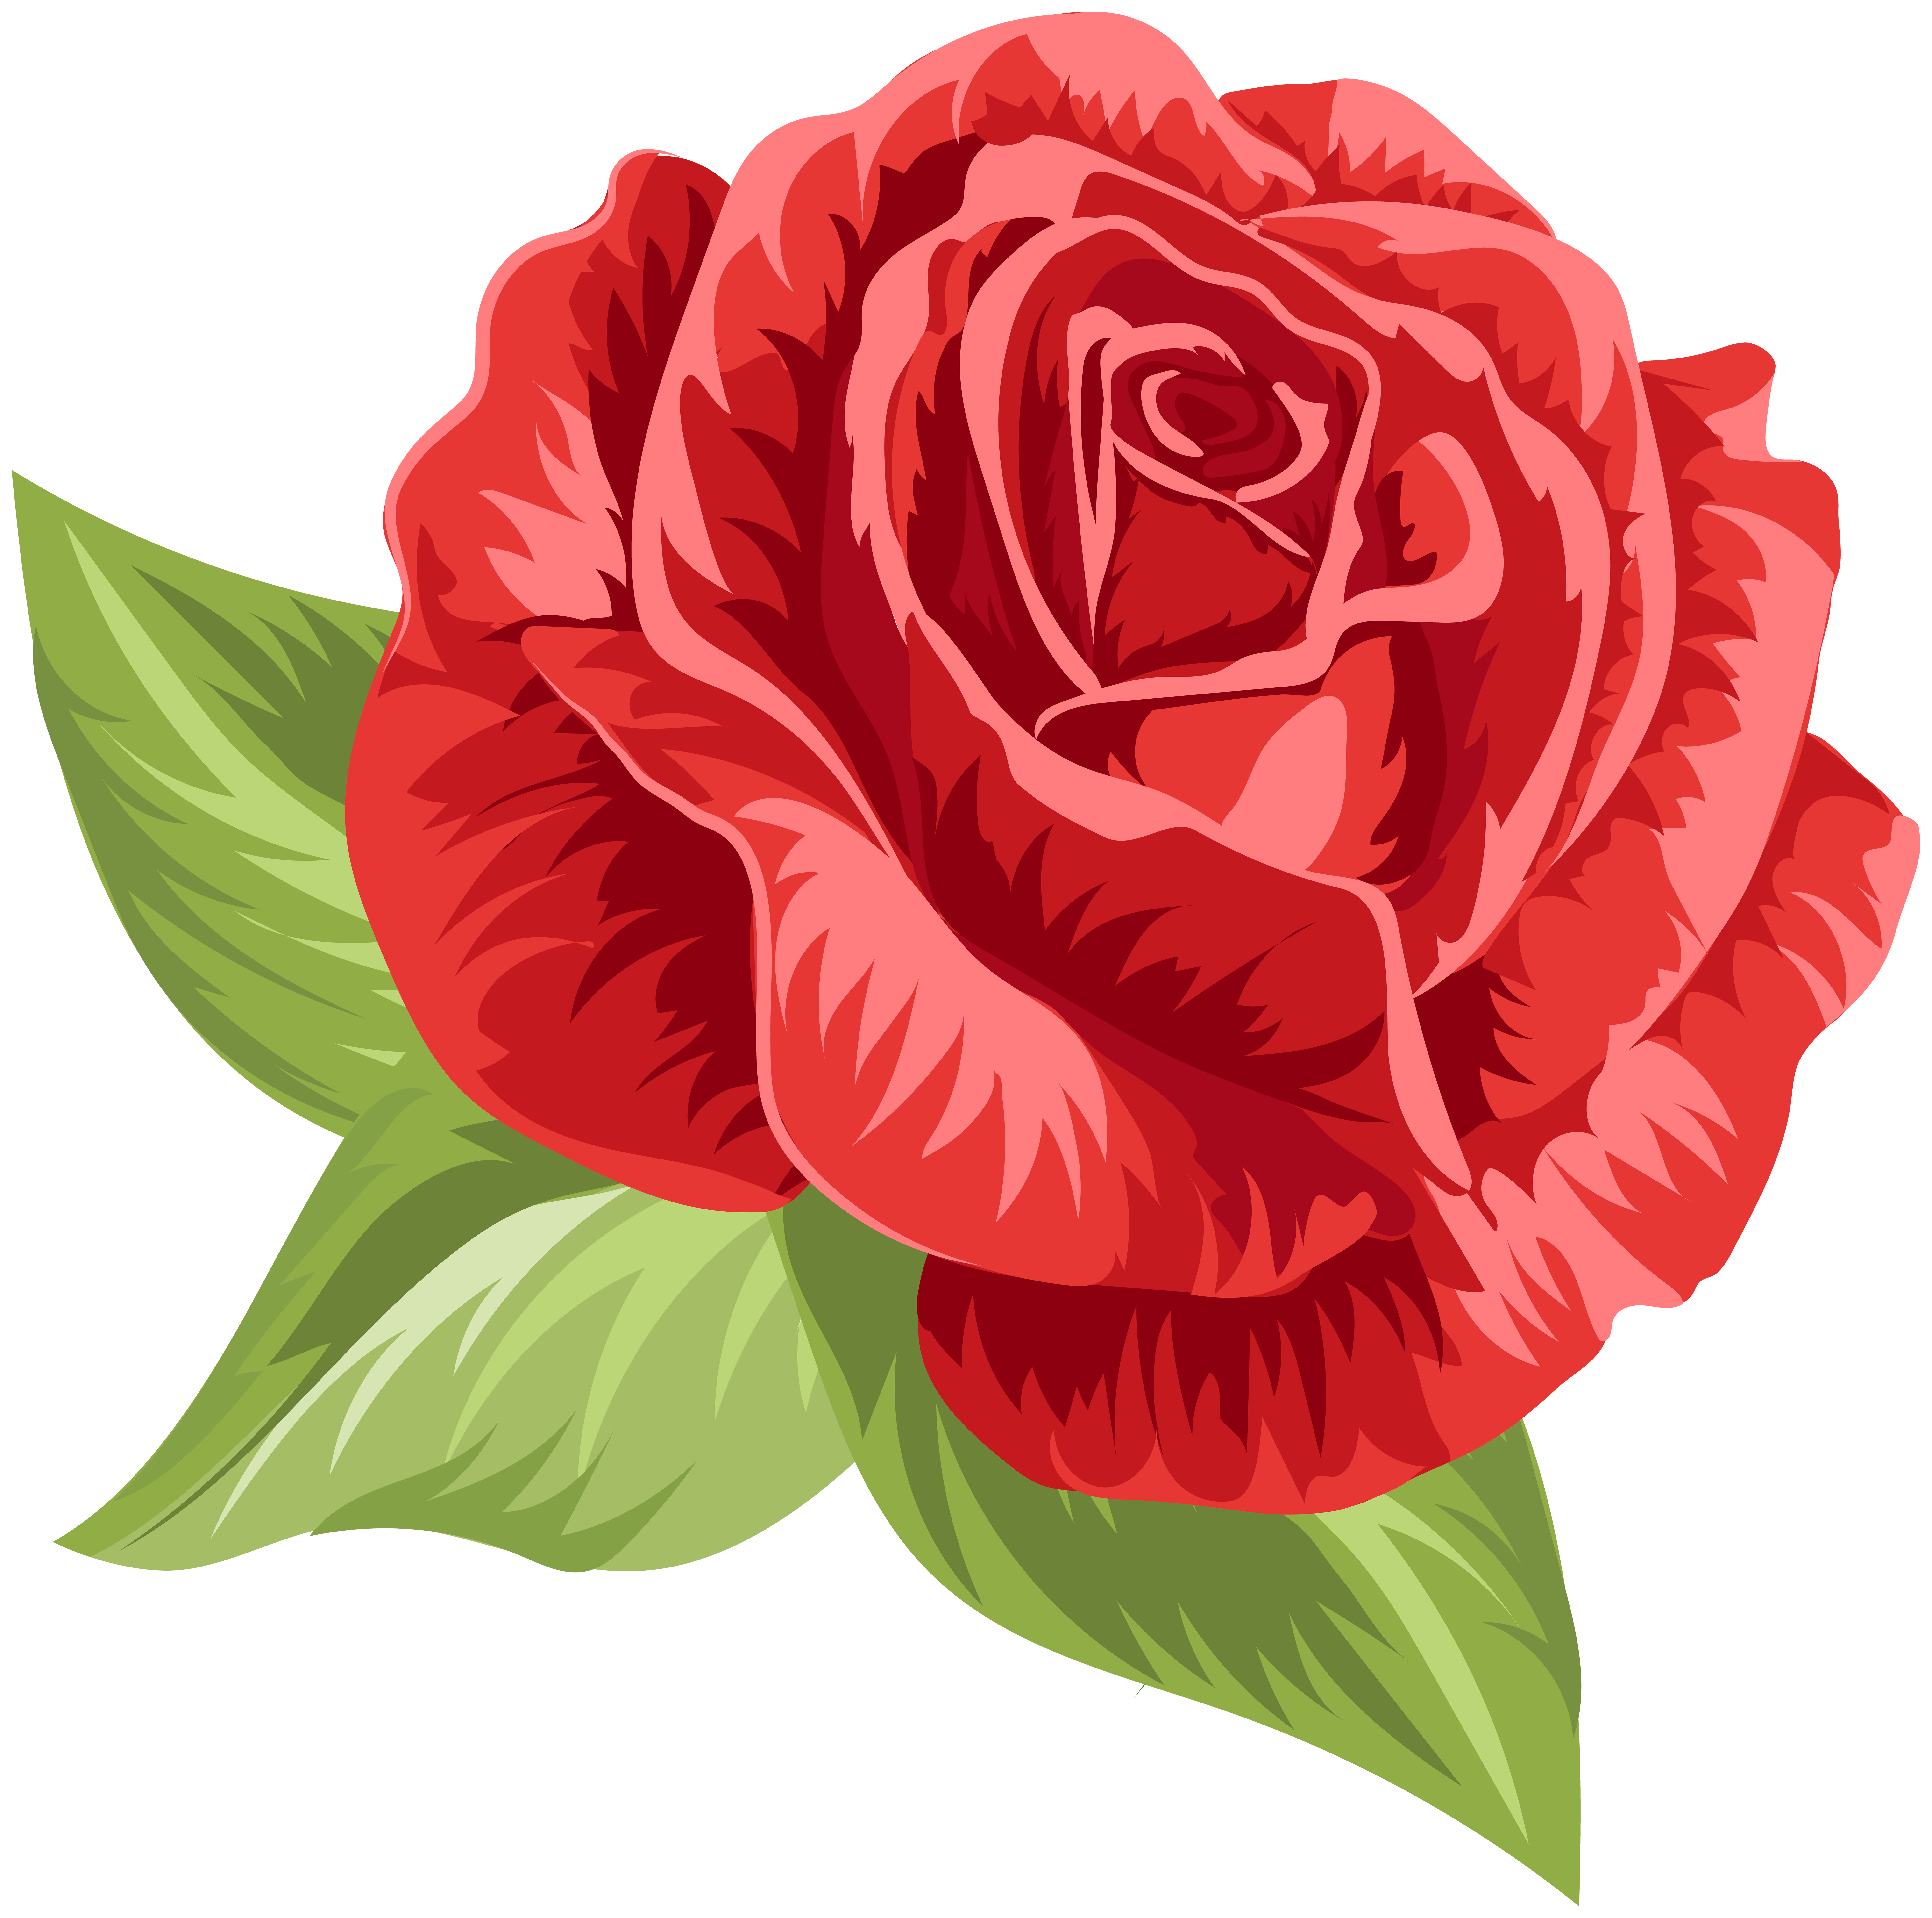 Potato clipart high re. Red vintage rose png